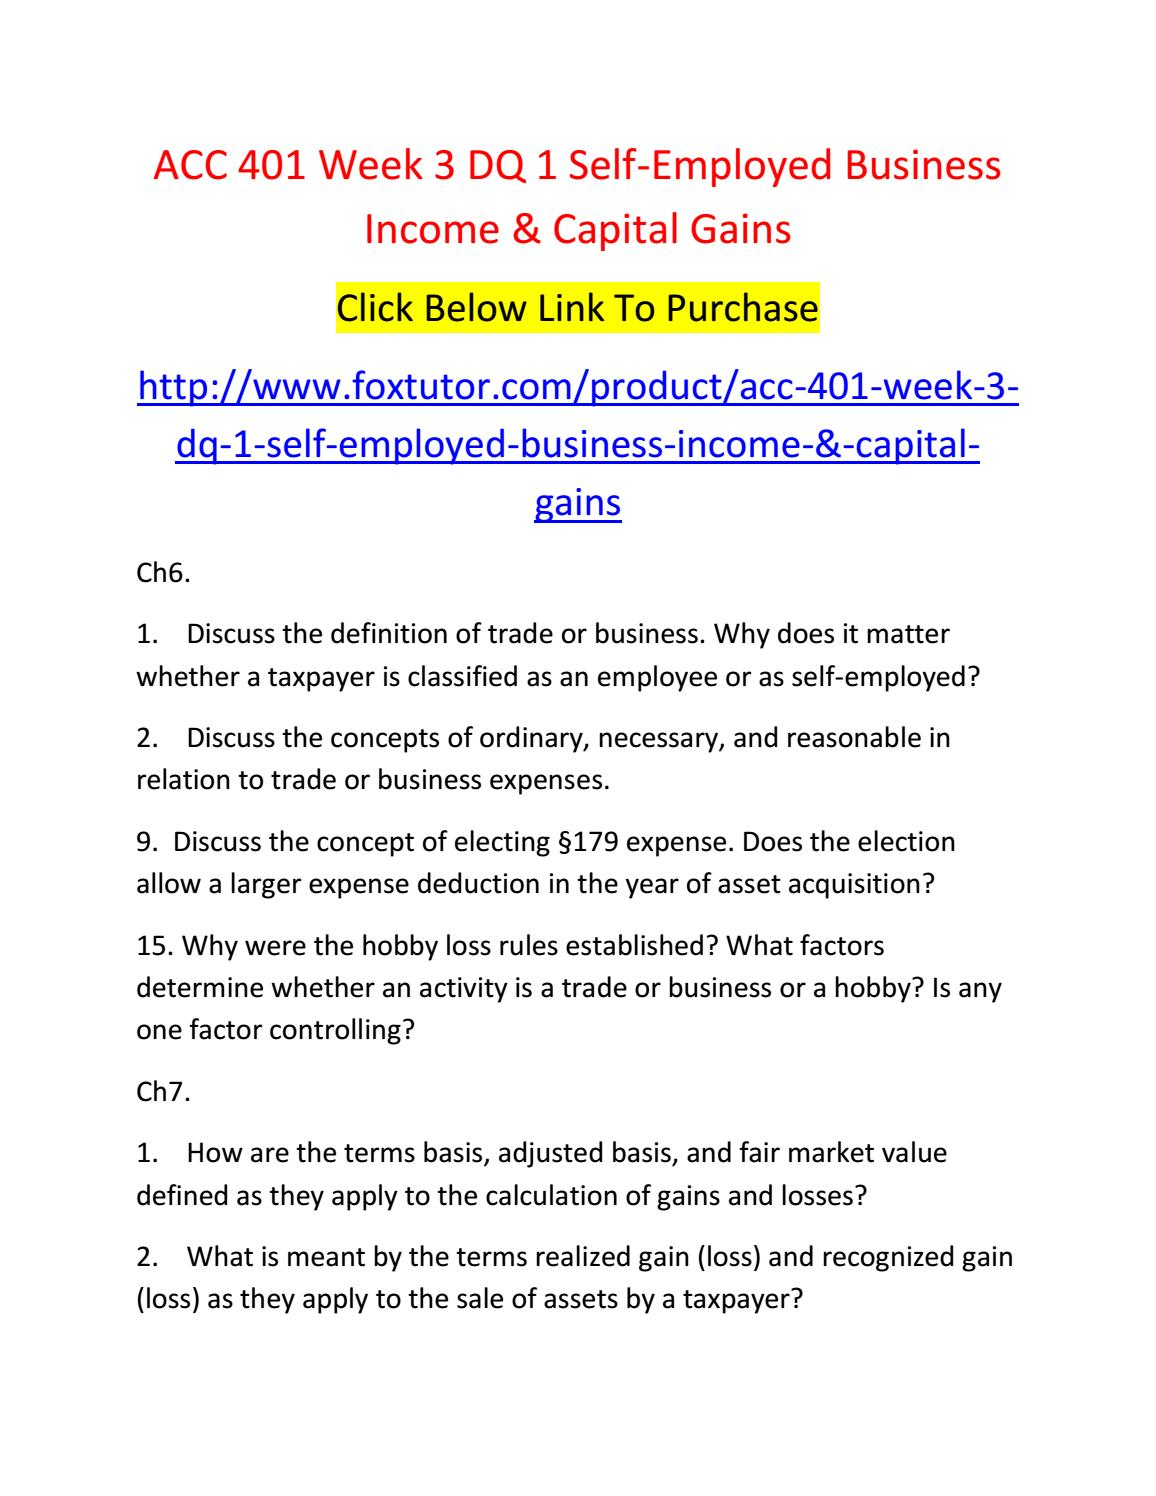 acc 401 week 3 dq 1 self employed business income & capital gains by